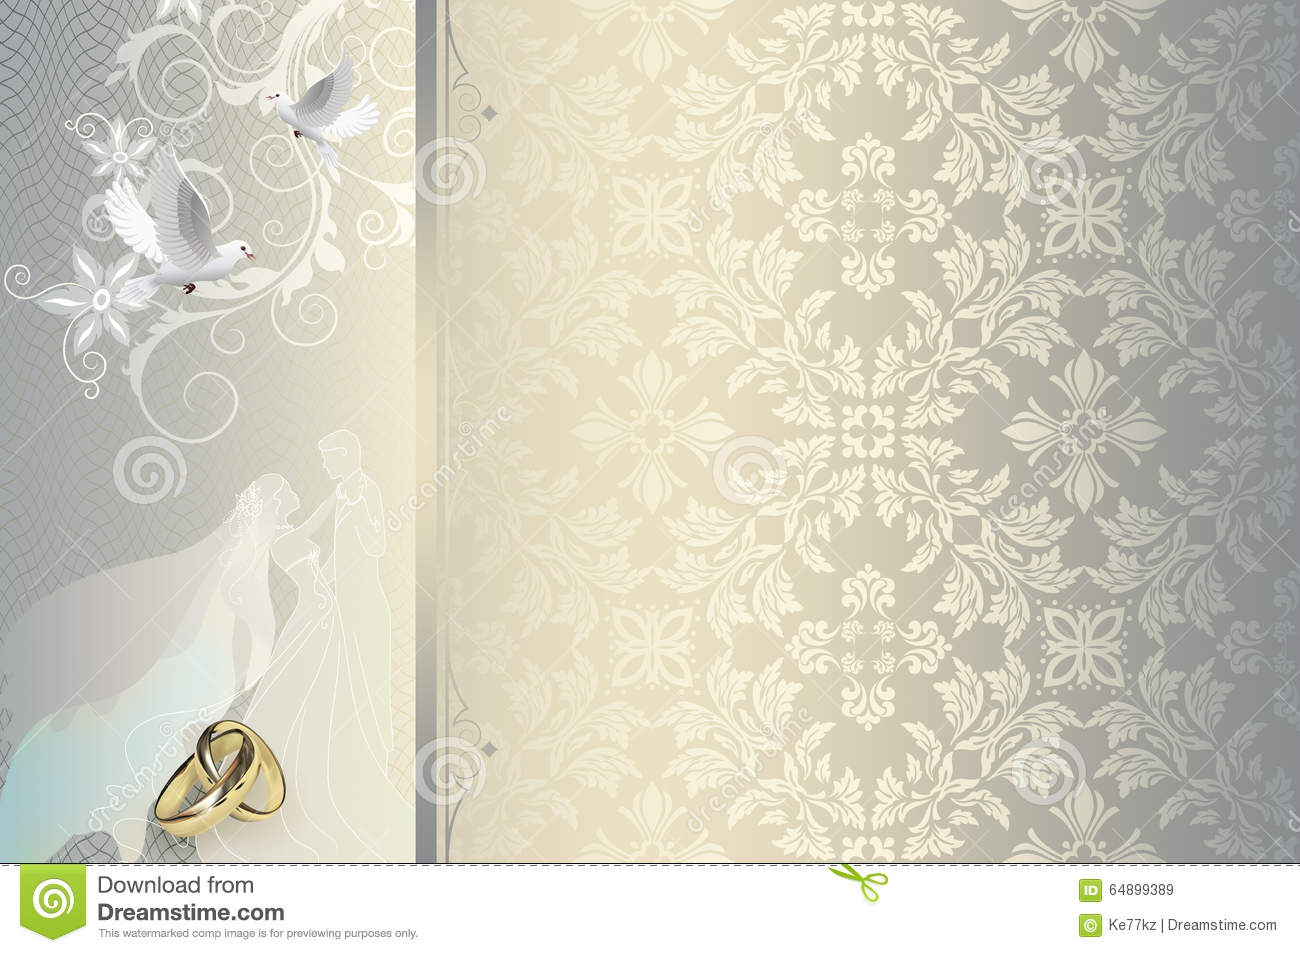 Free Wedding Invitation Background Designs: Wallpaper Wedding Invitation Card